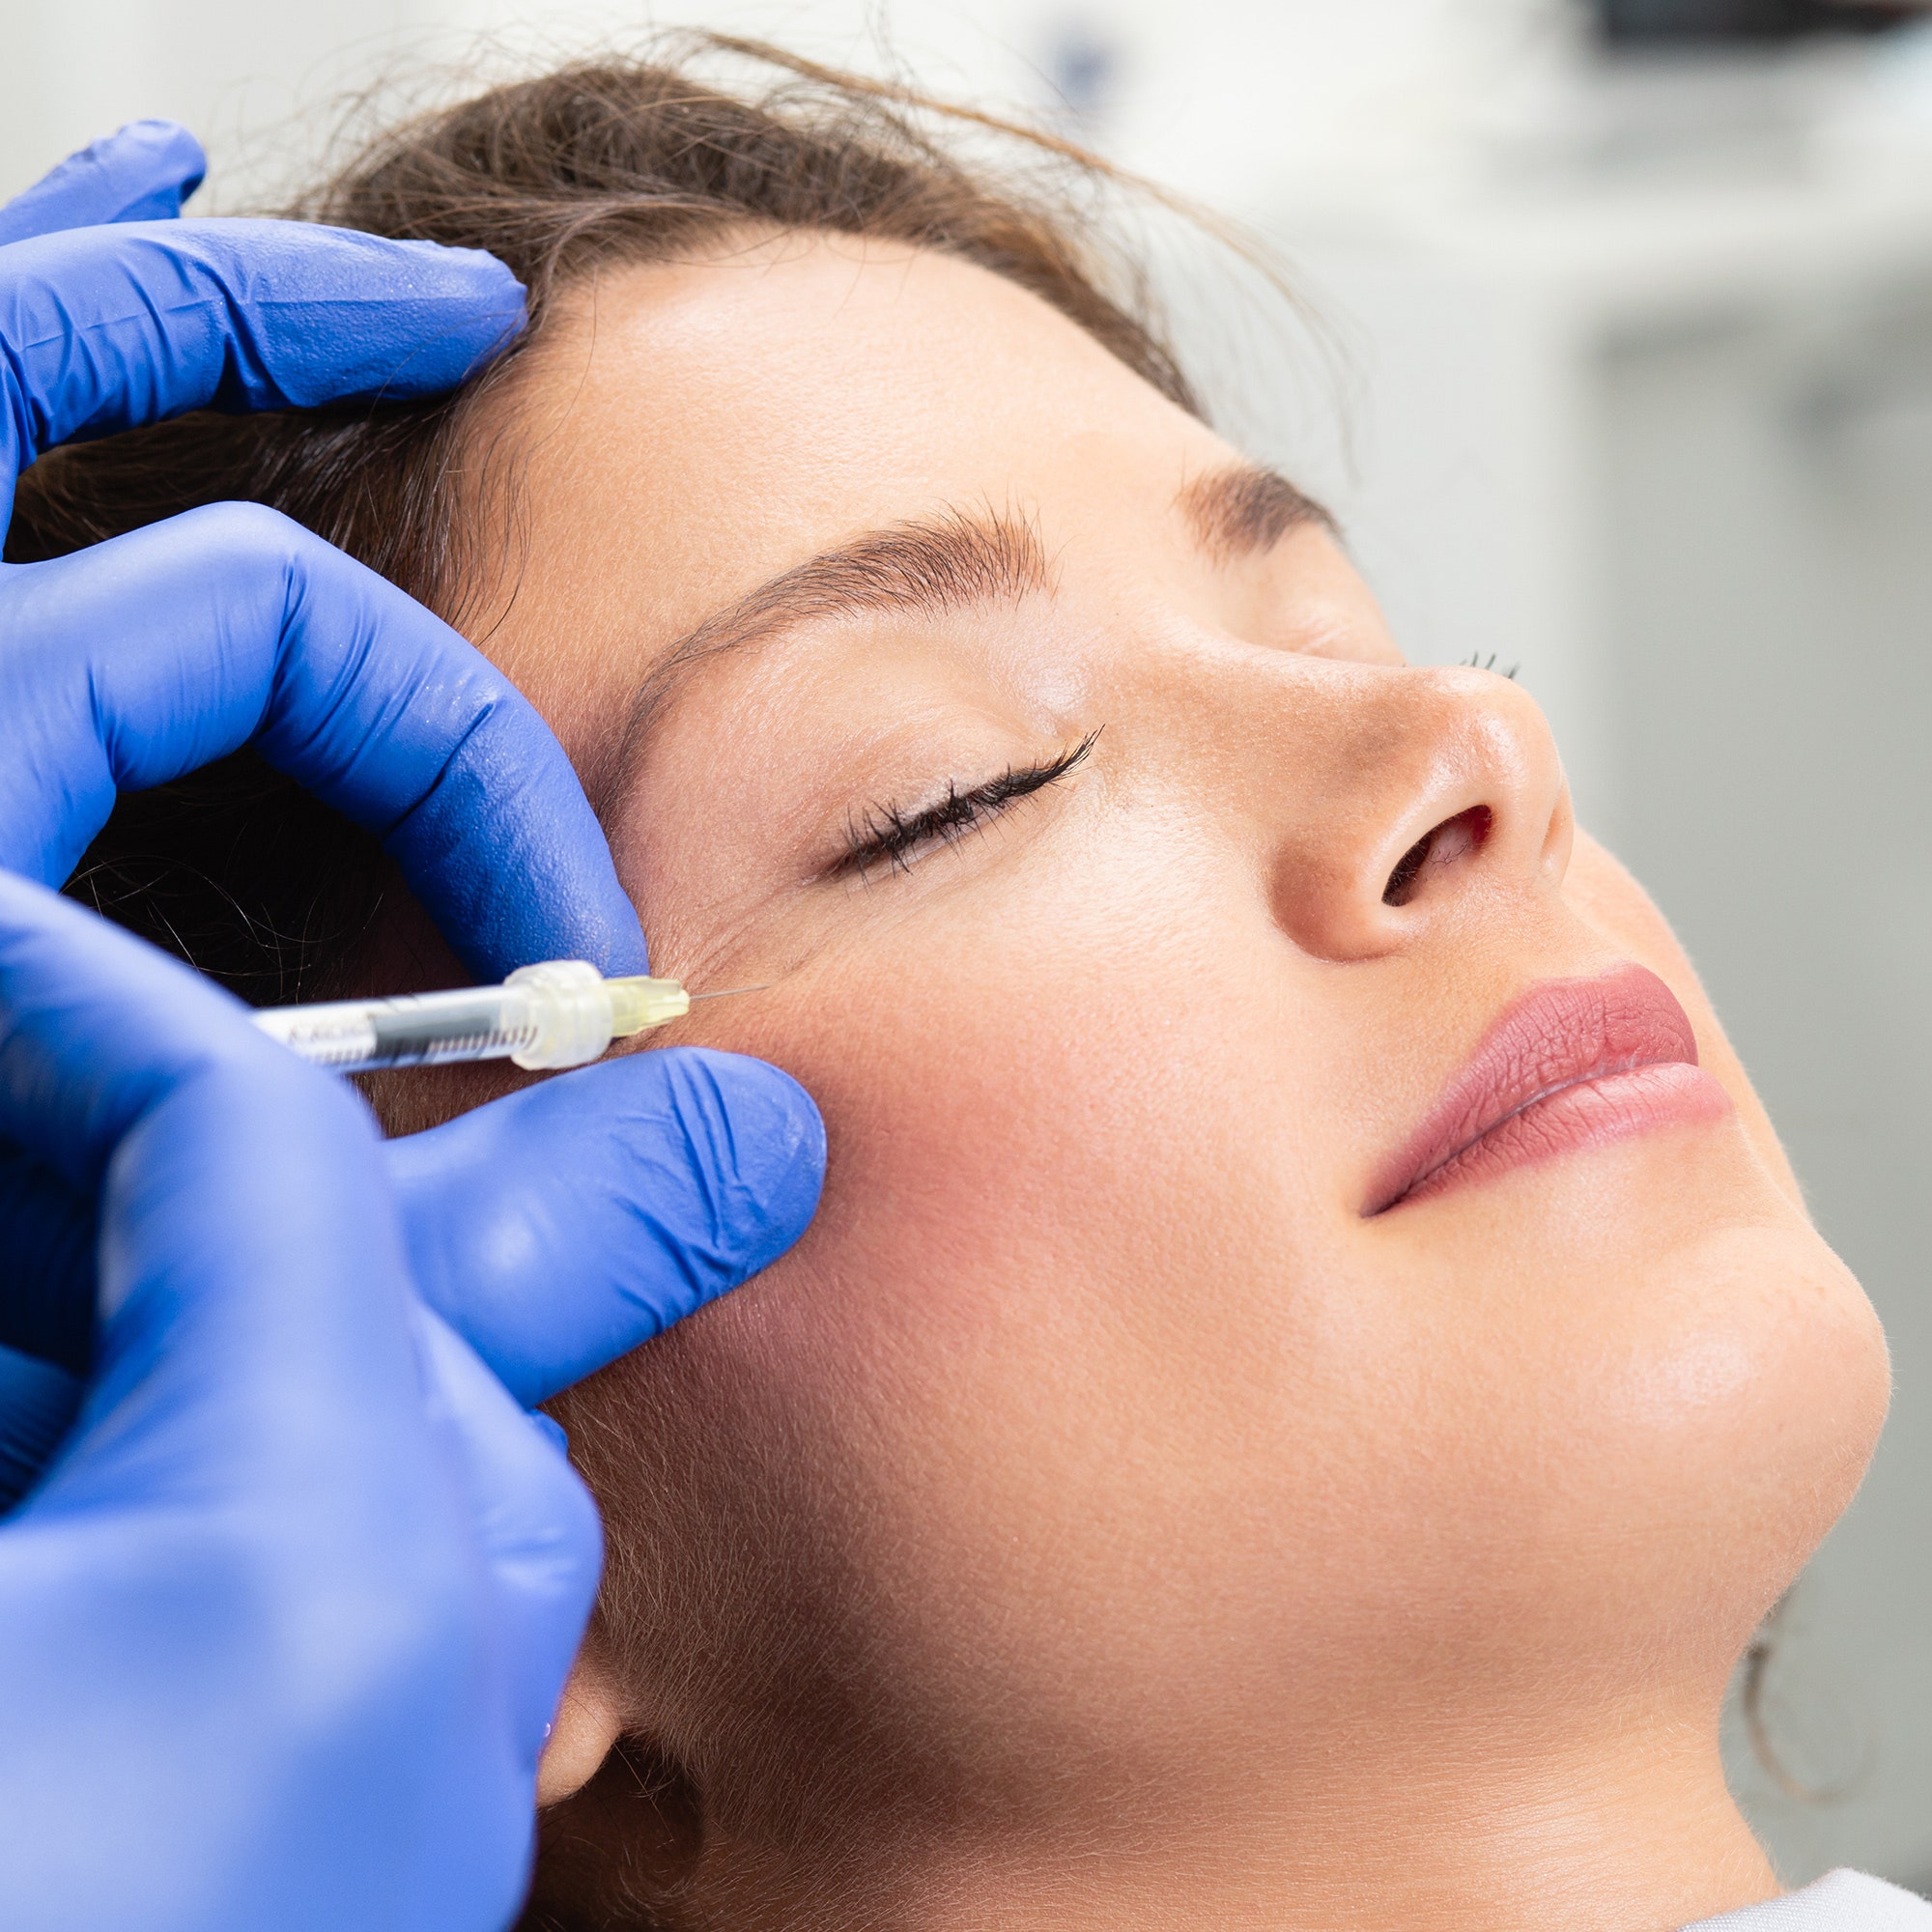 Botox-injections Here's How to Prevent the Formation of Wrinkles